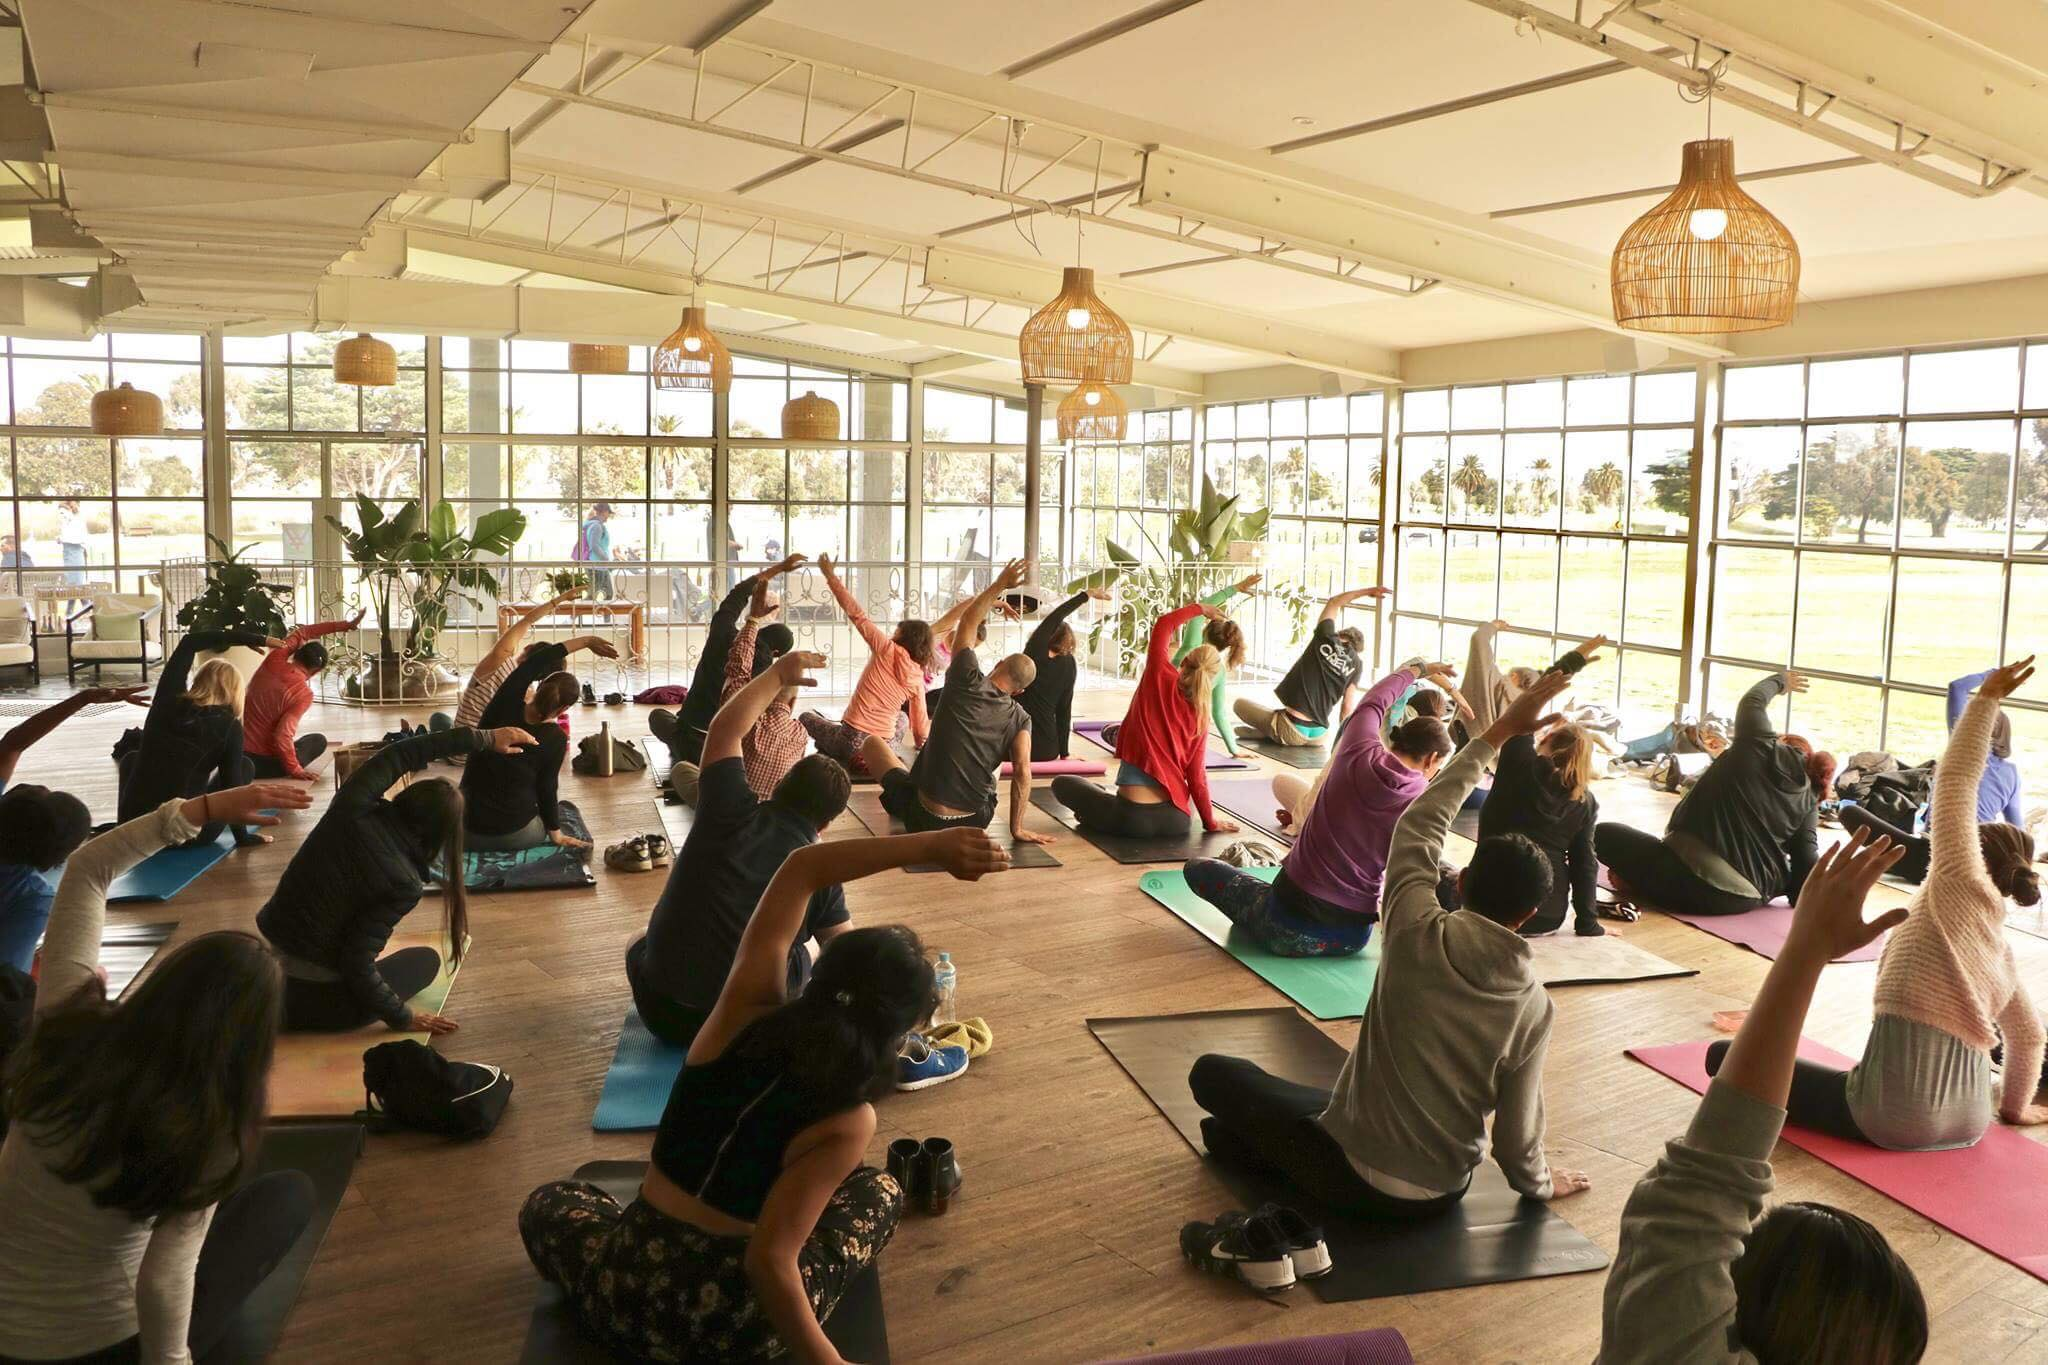 - The Aspire ProgramYoga ClassesSunday Soul Sessions1:1 CoachingWorkplace ProgramsGuest Speaking & Writing